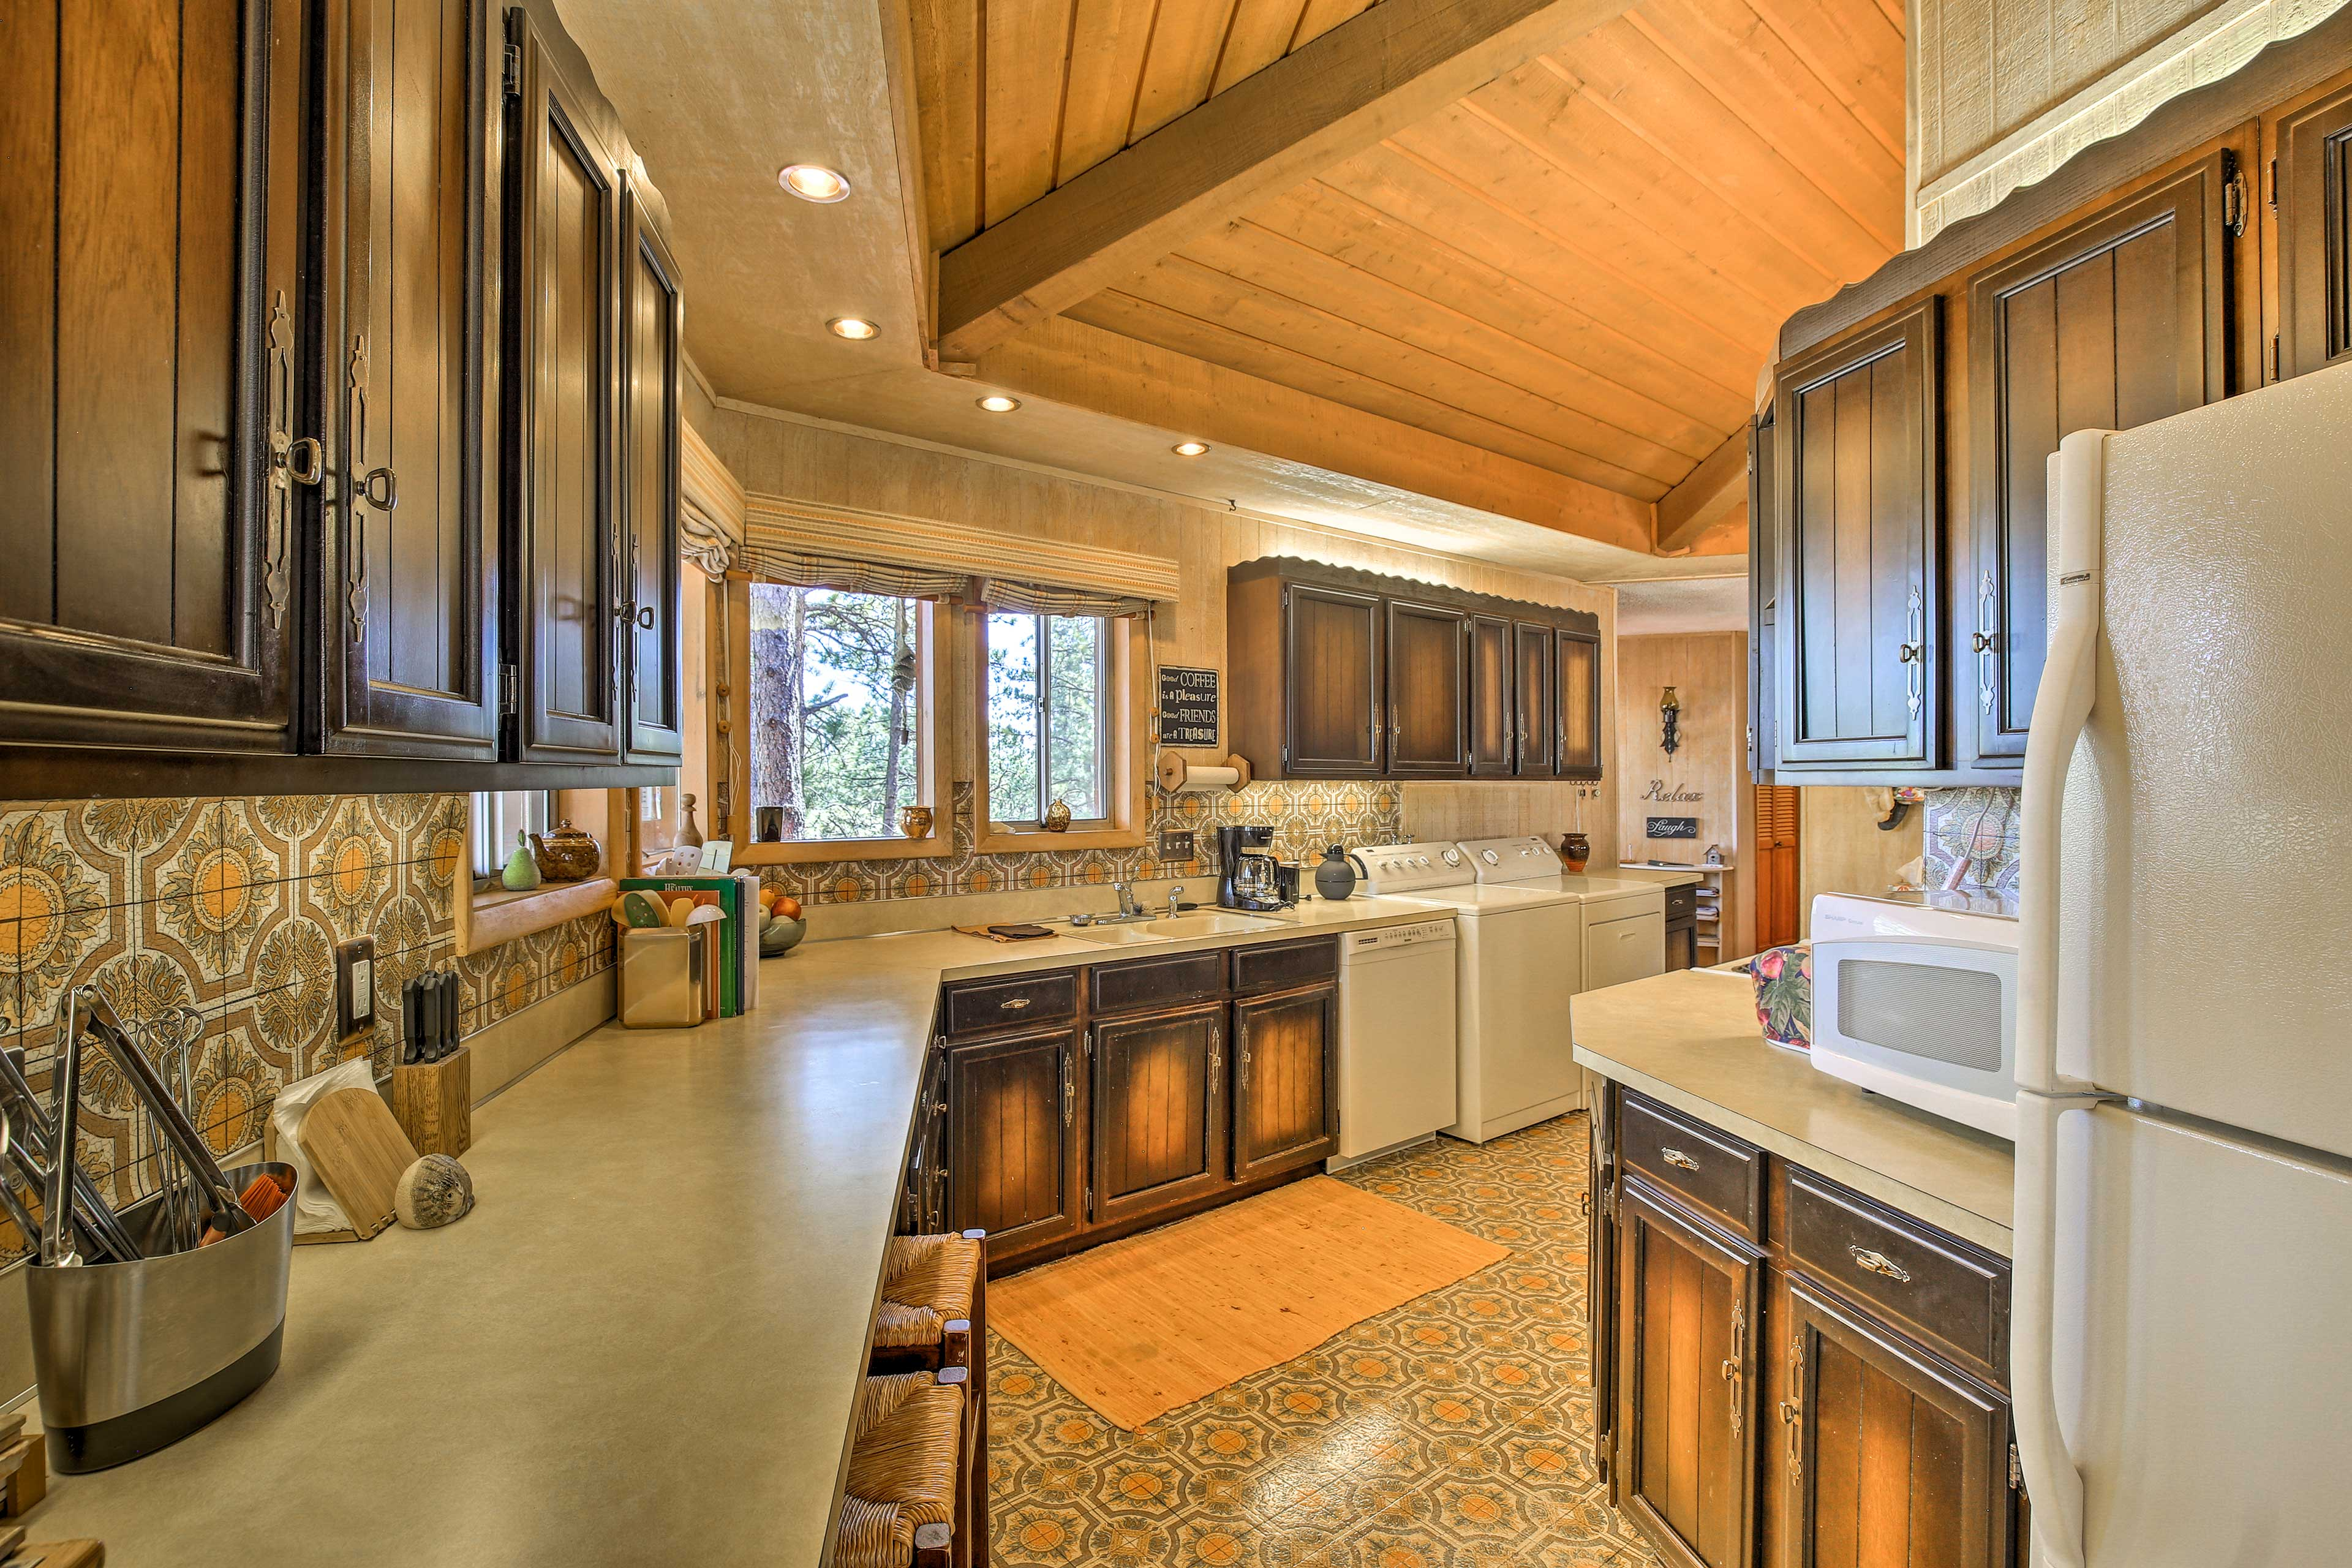 Fully Equipped Kitchen | Main Floor | Cooking Basics | Drip Coffee Maker